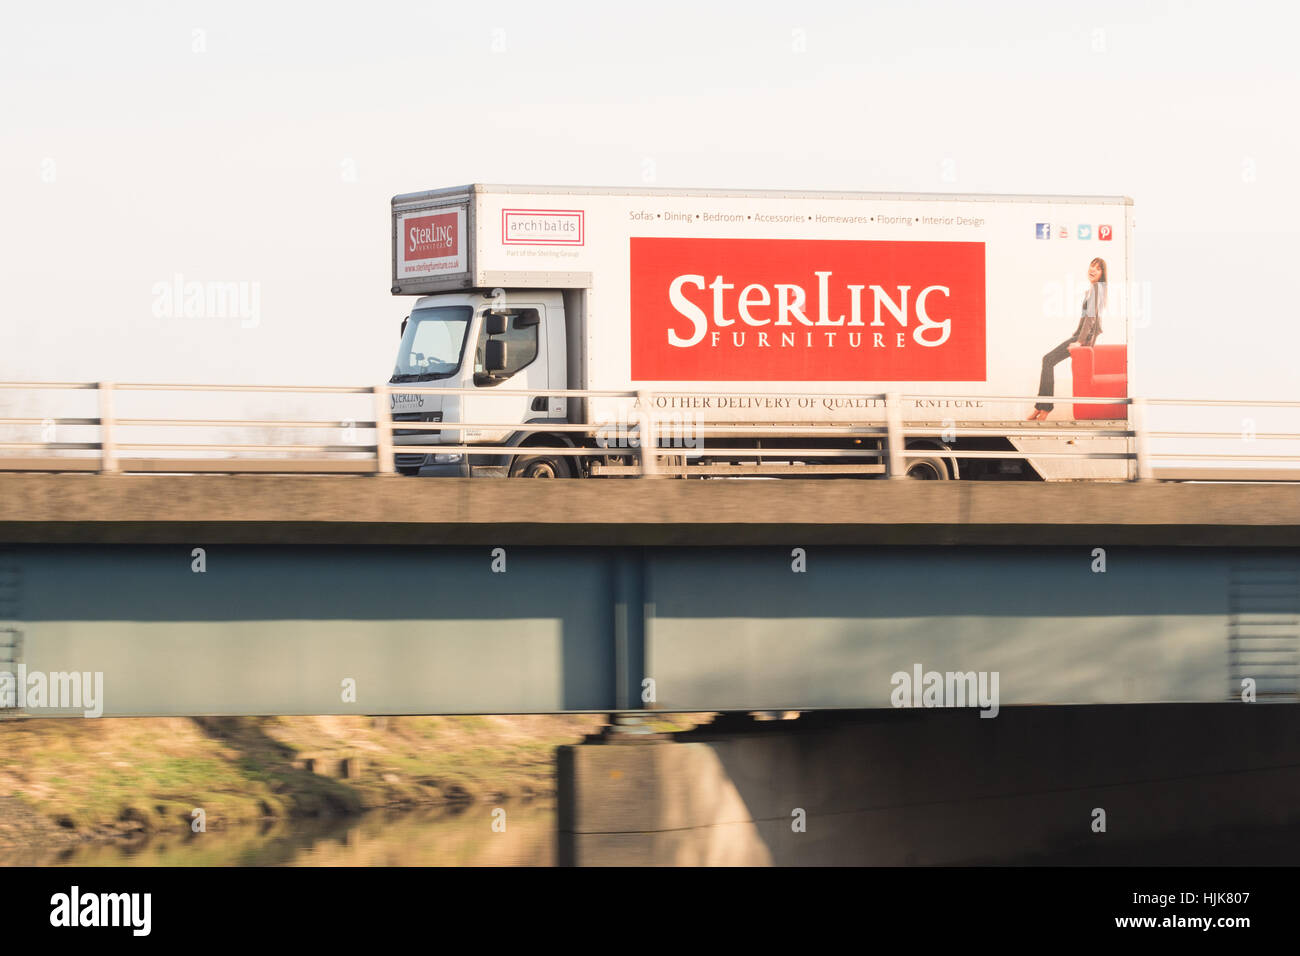 Sterling furniture delivery van scotland uk stock image